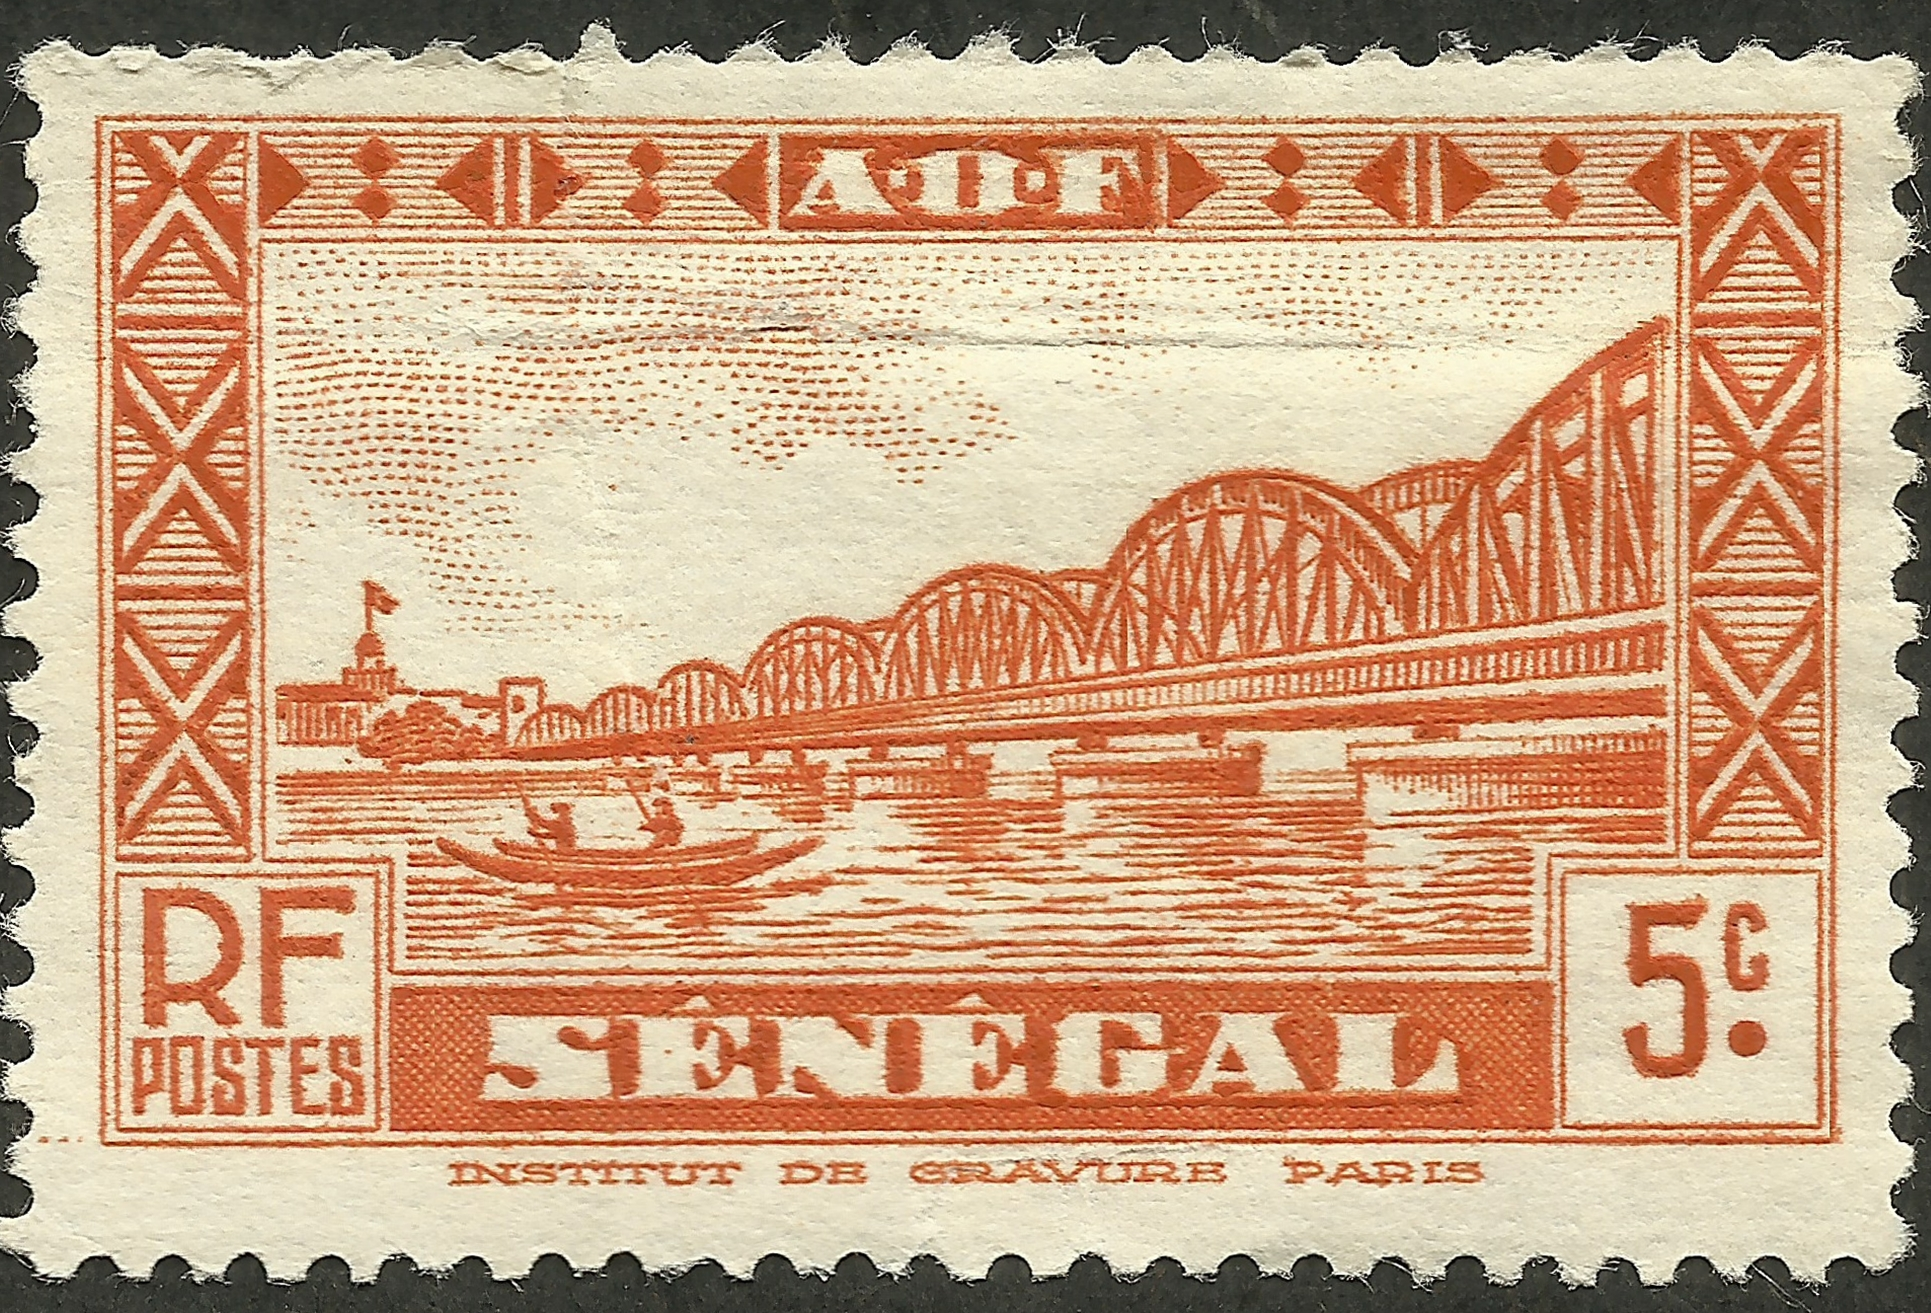 Senegal [French Colony] #146 (1935)